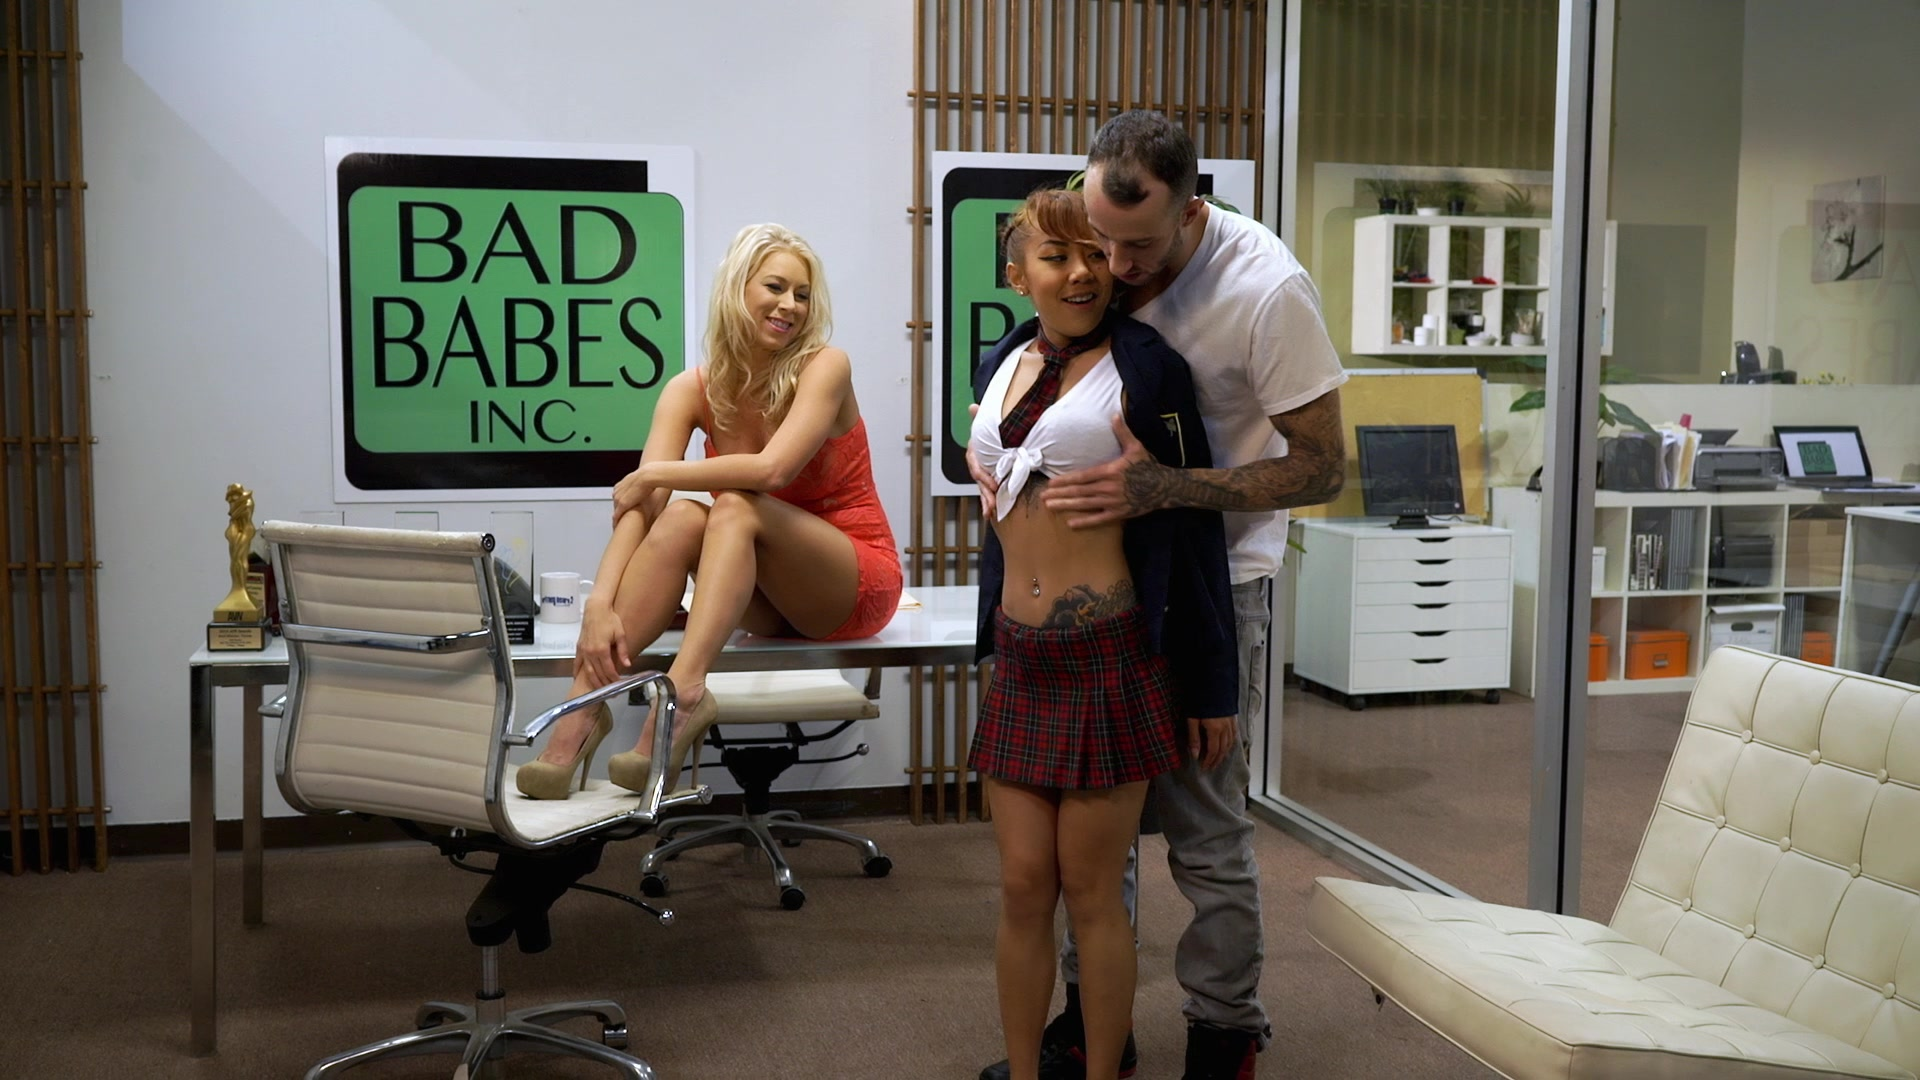 Scene with Katie Morgan and Kimberly Chi - image 5 out of 20